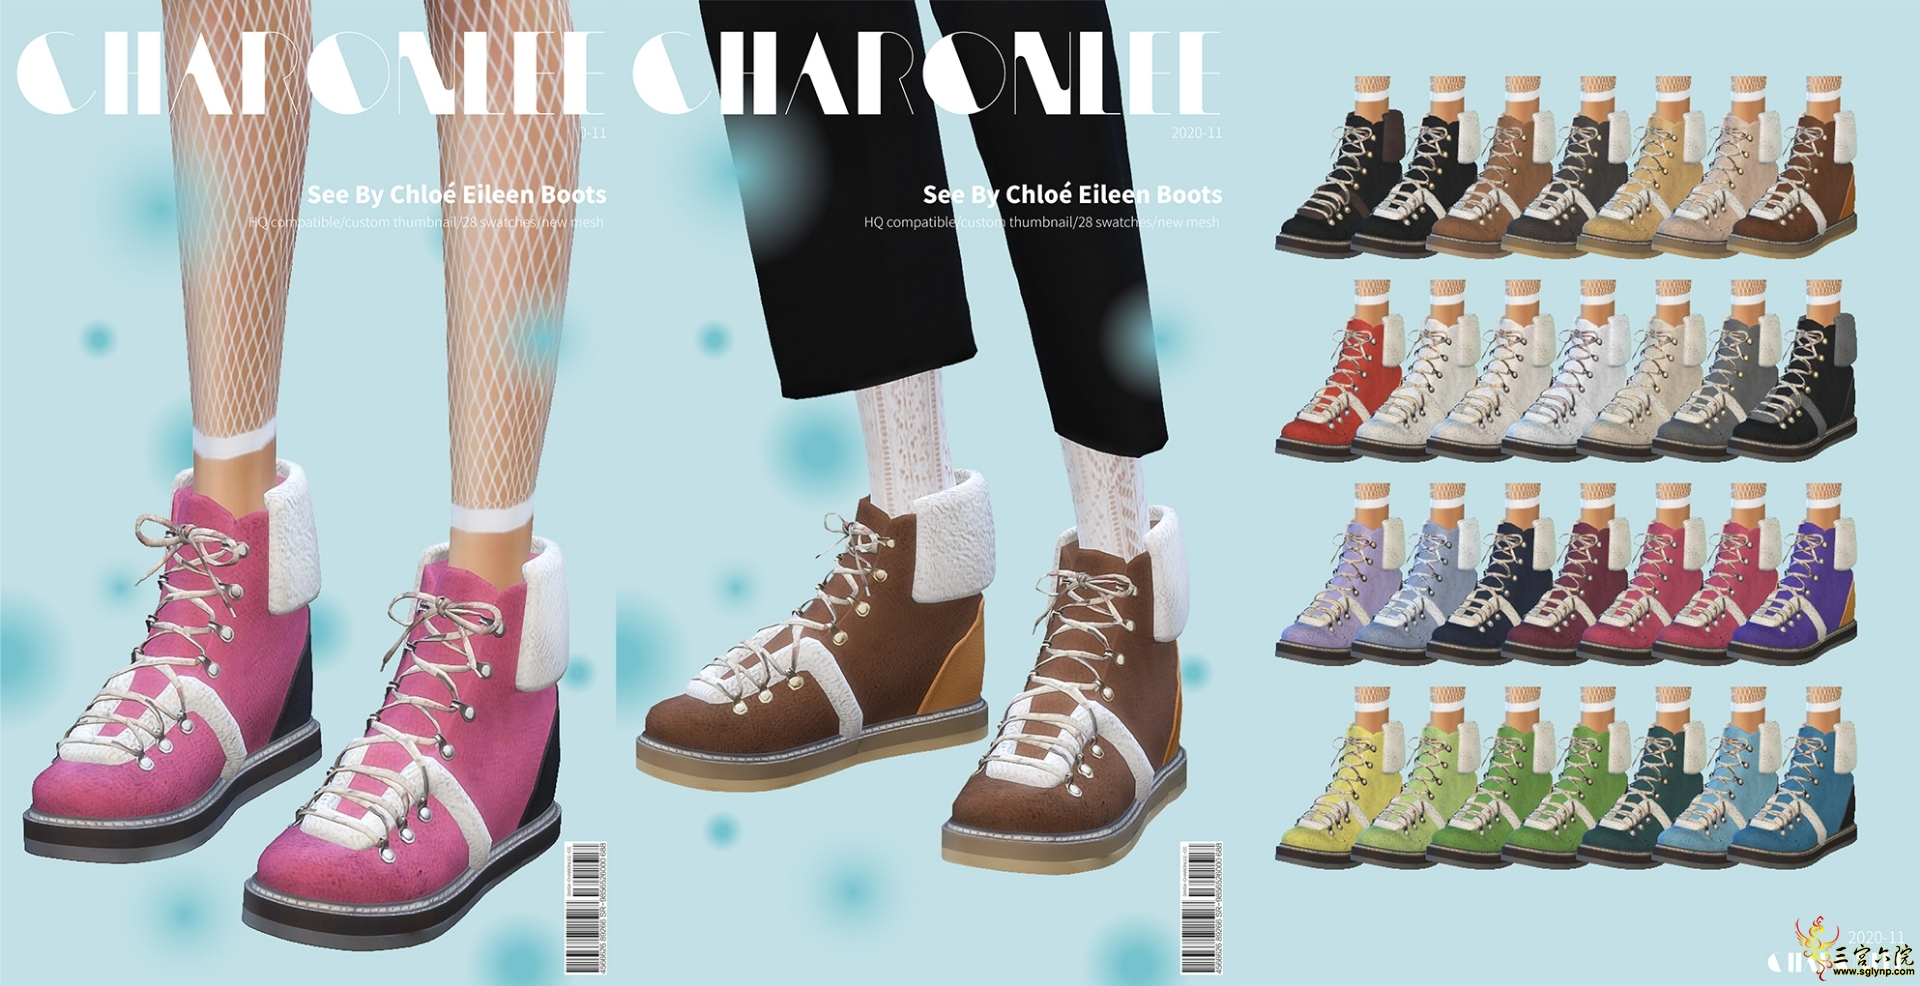 [CHARONLEE]2020-059-See By Chloé Eileen Boots.jpg